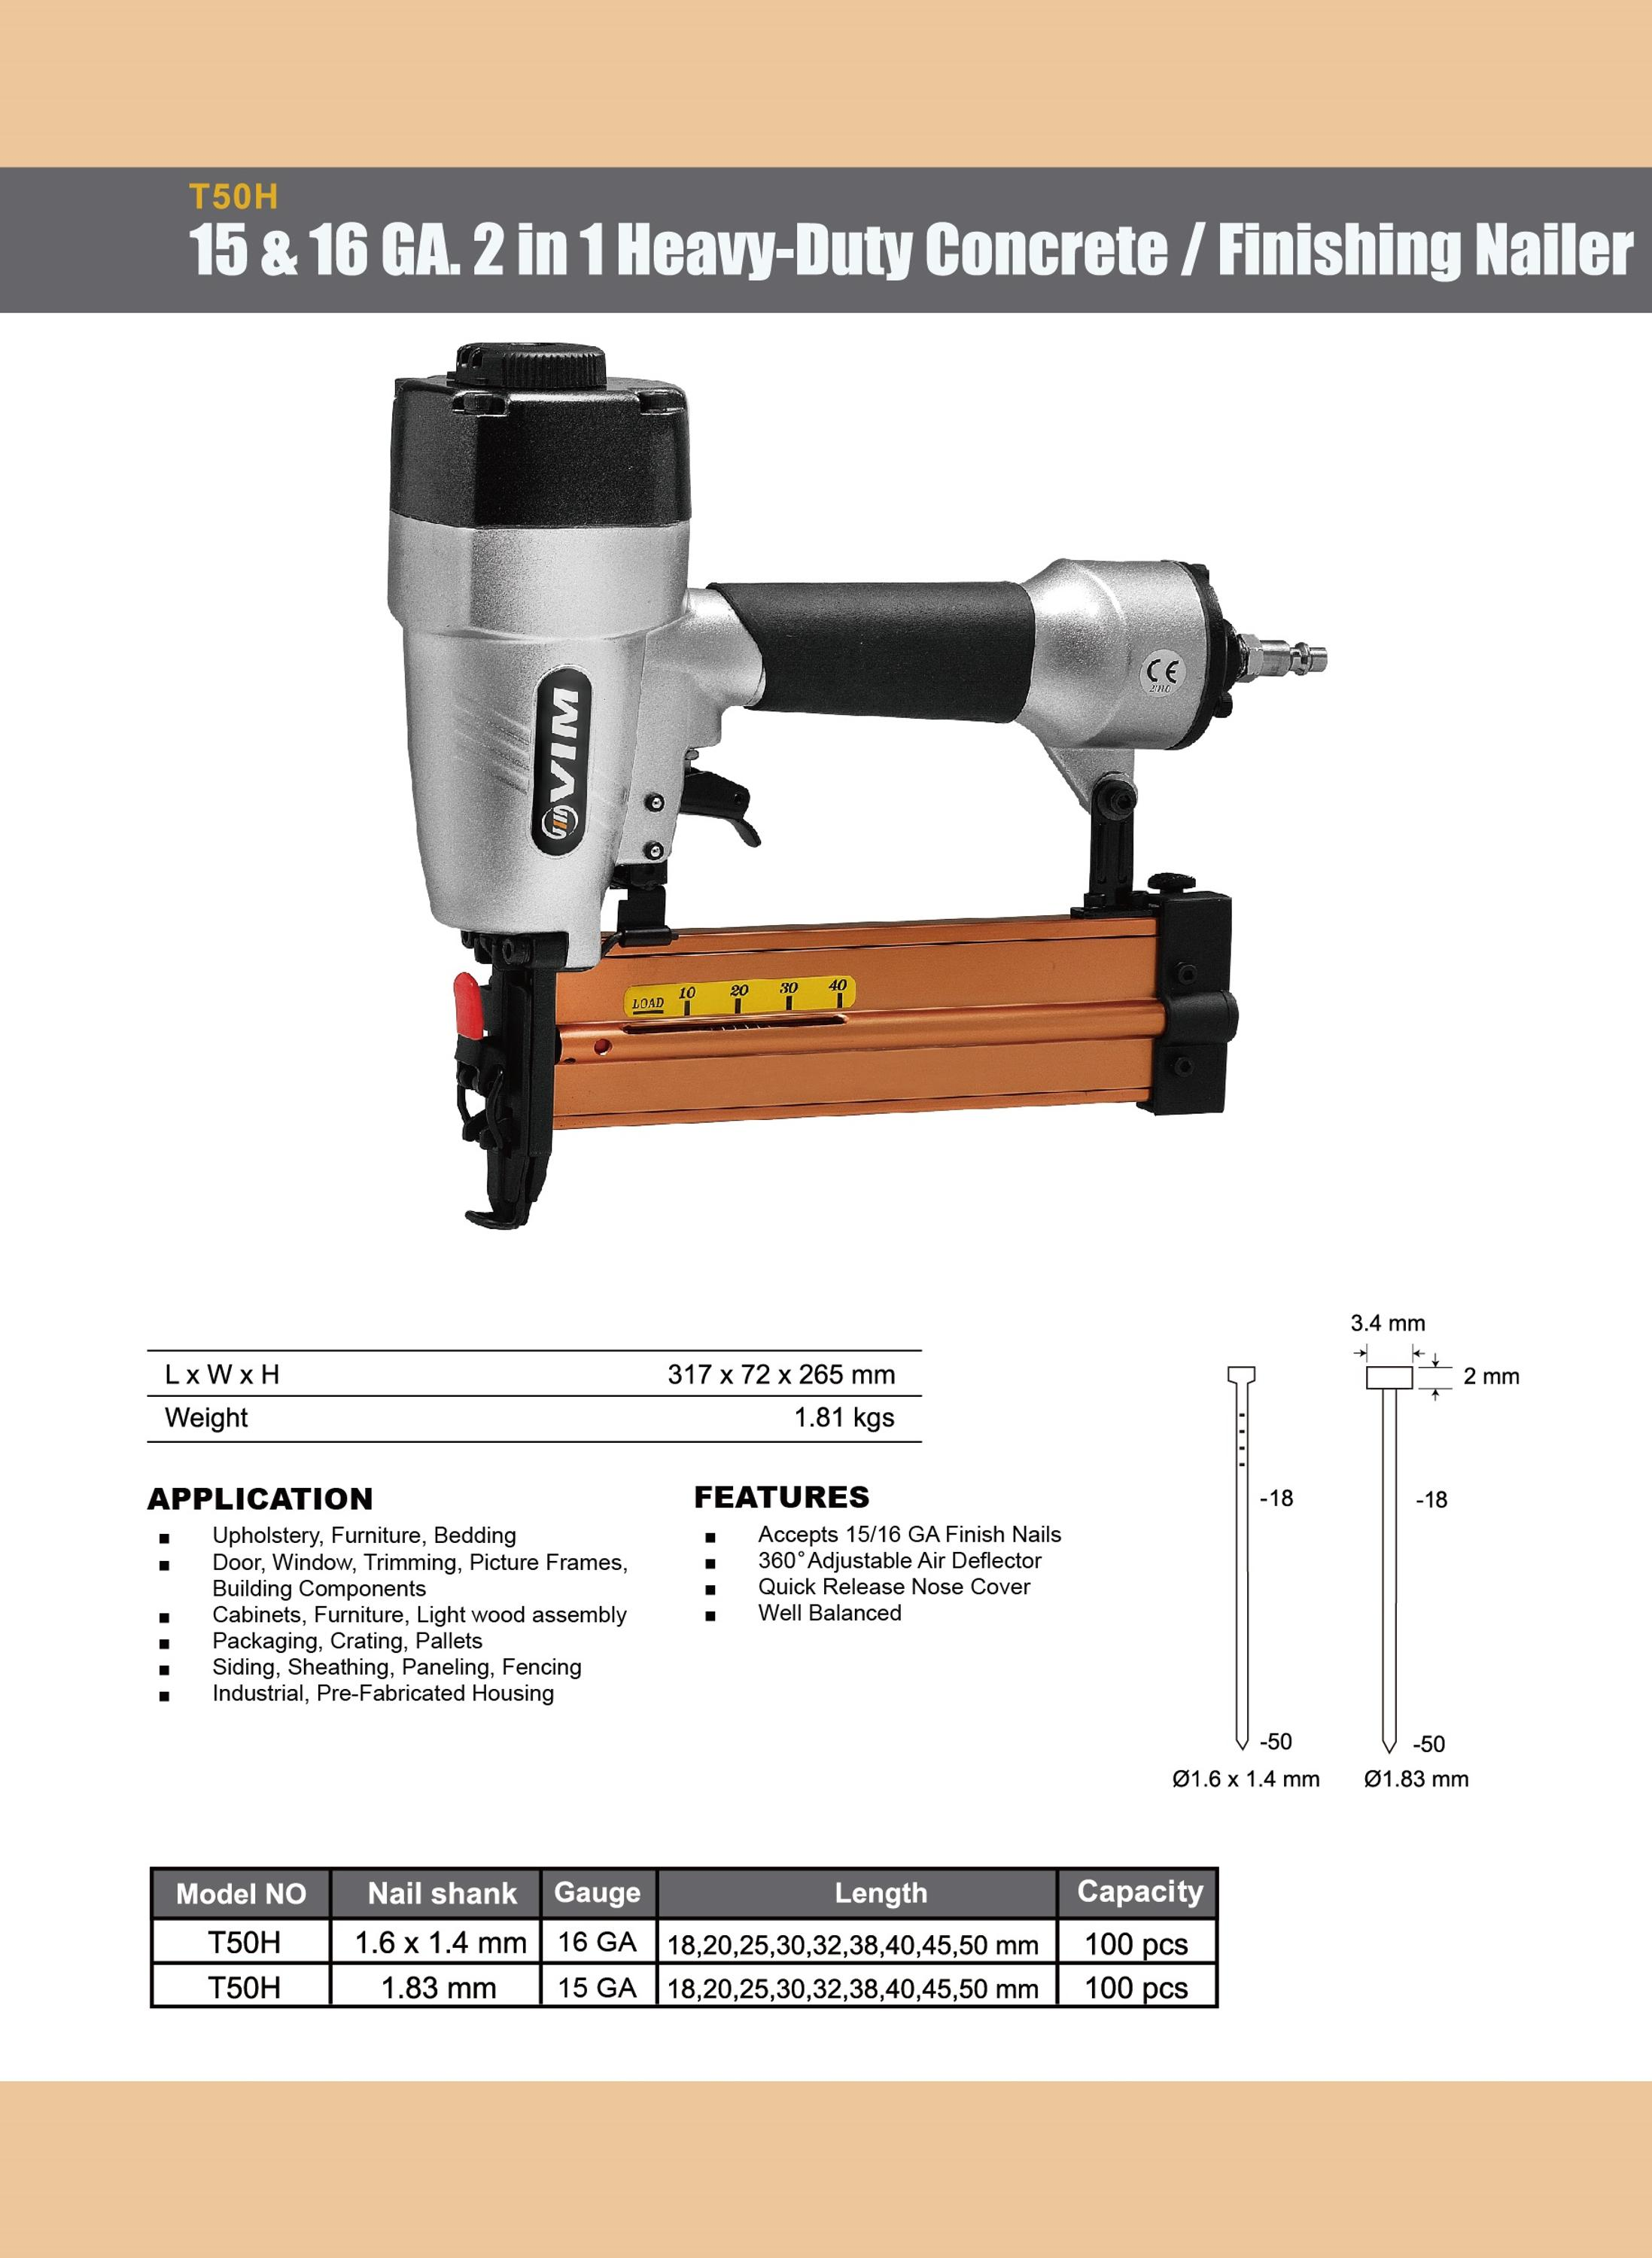 15 & 16 Gauge 2 in 1 Concrete & Finishing Nailer